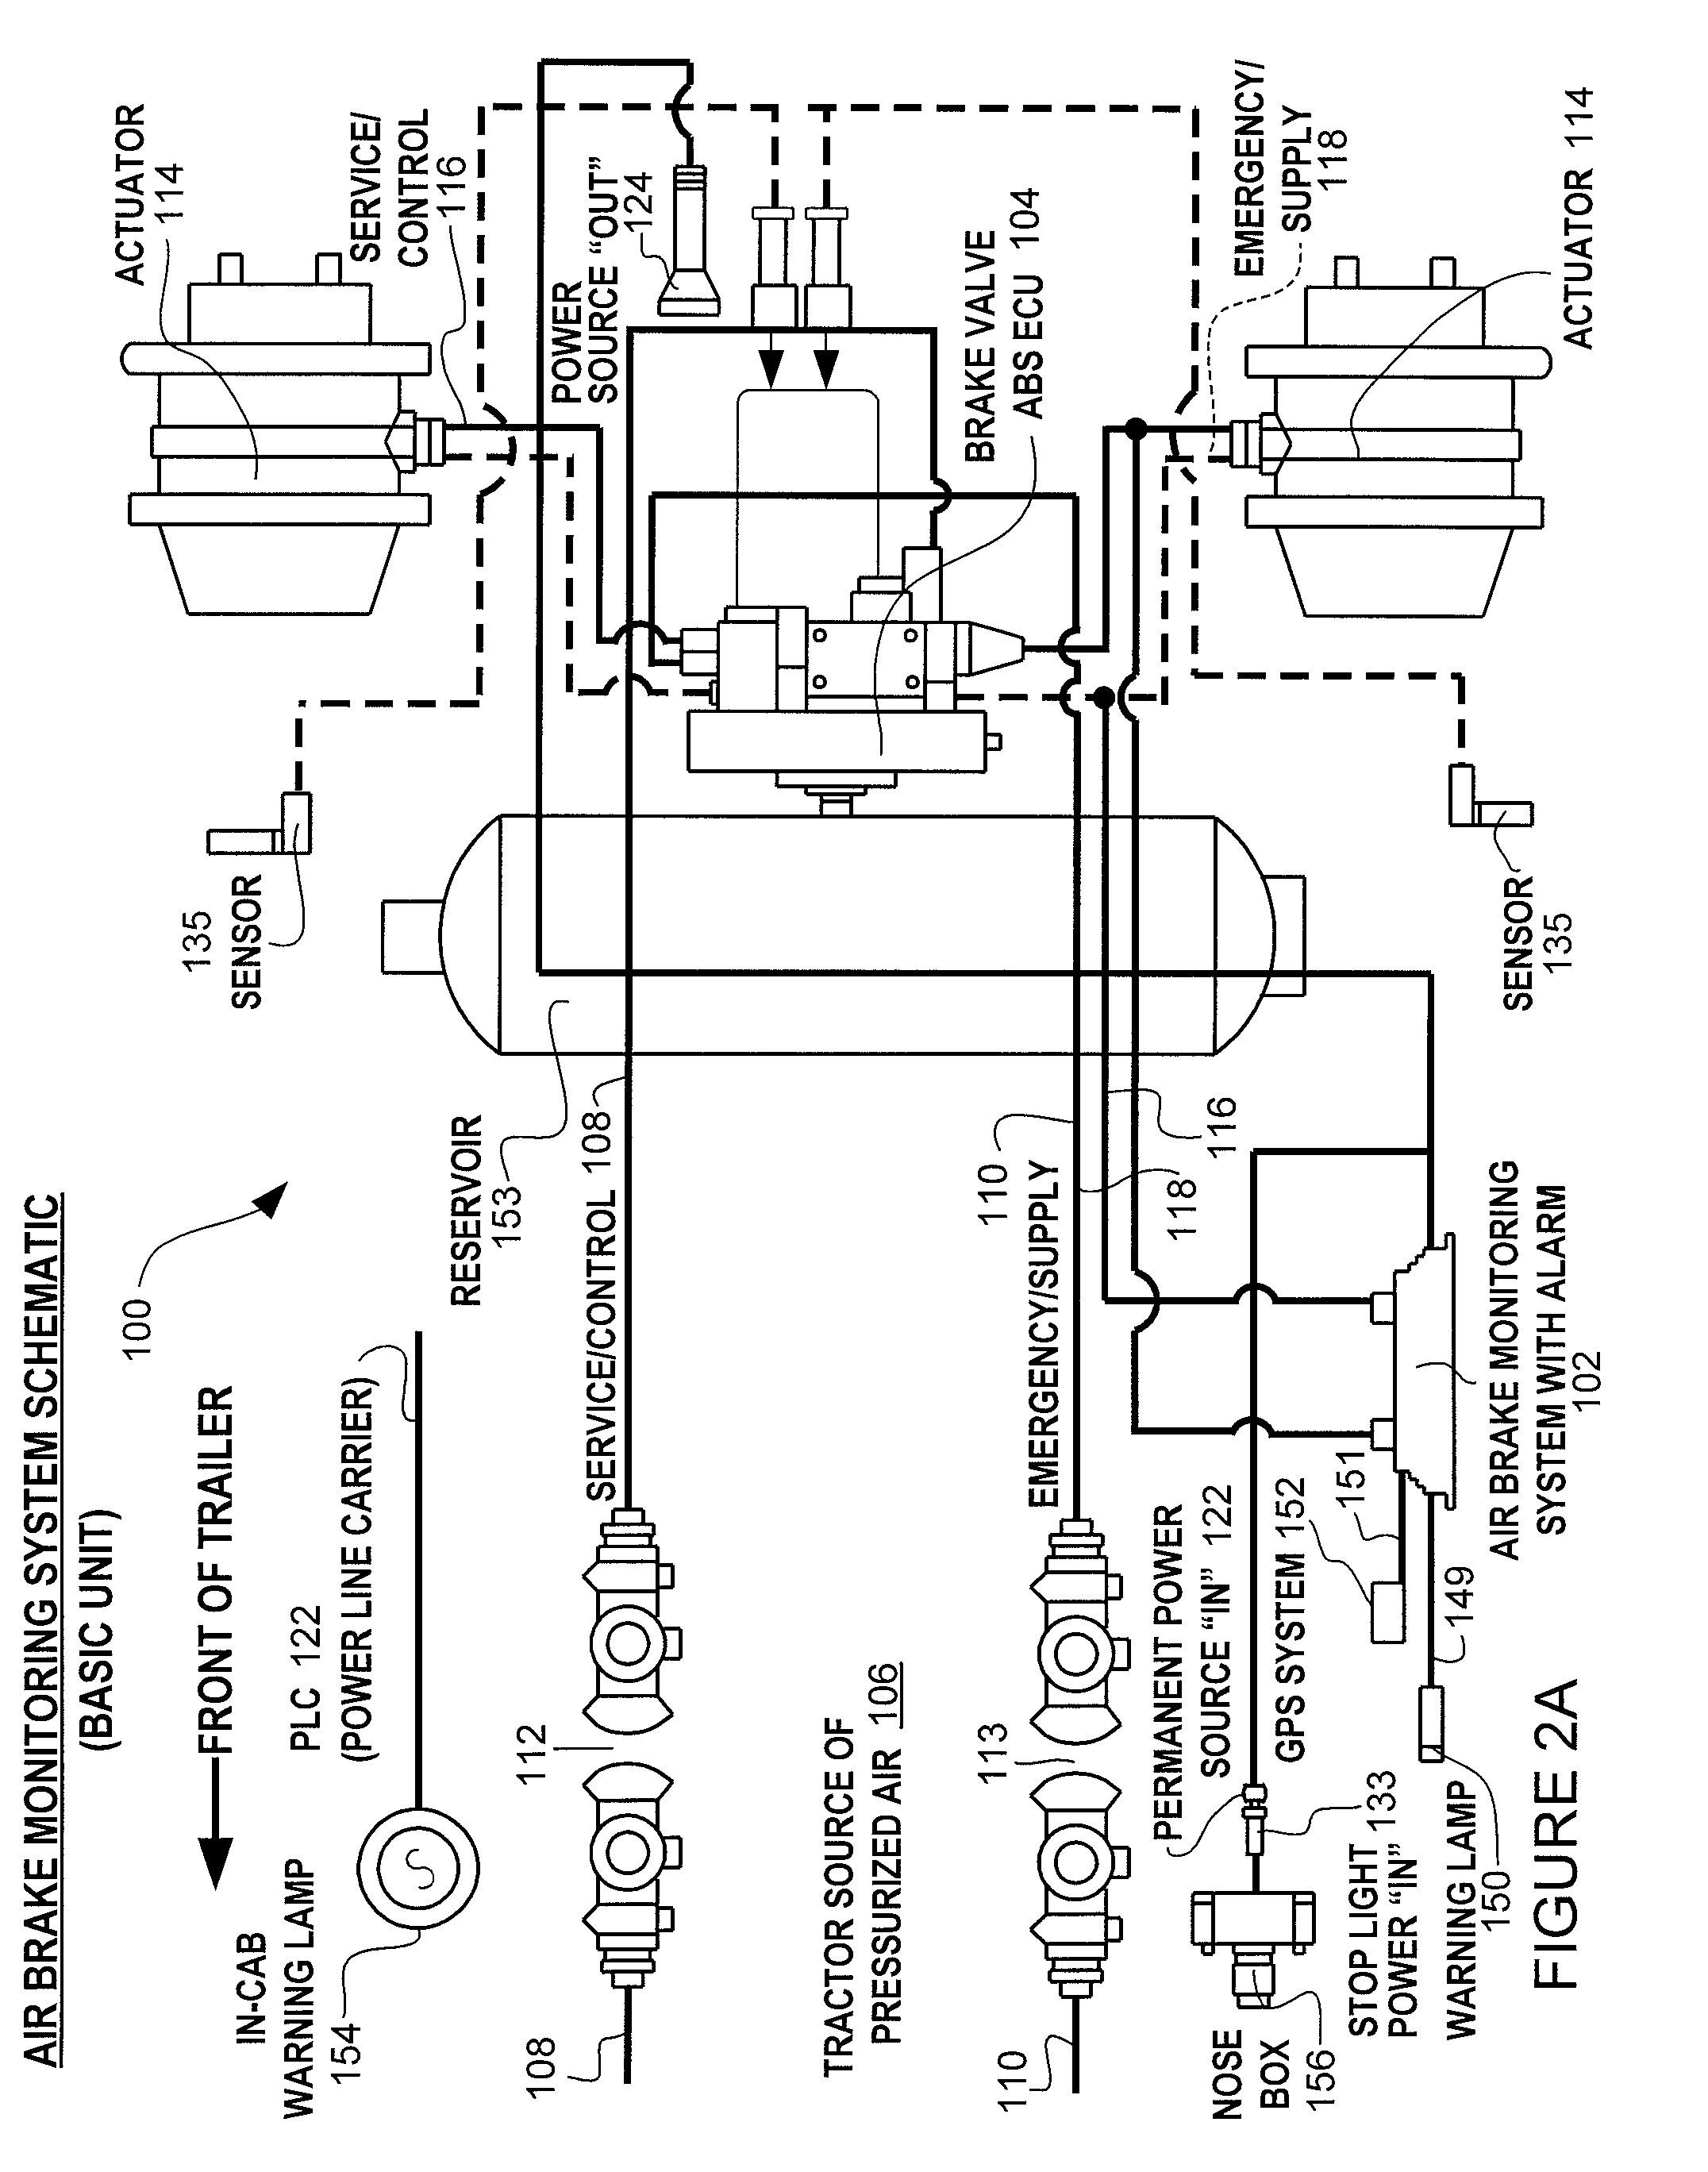 US08204668 20120619 D00003?resize\\\\=665%2C845\\\\&ssl\\\\=1 1997 peterbilt 378 wiring schematic wiring diagram 1990 peterbilt 378 wiring schematic at mifinder.co